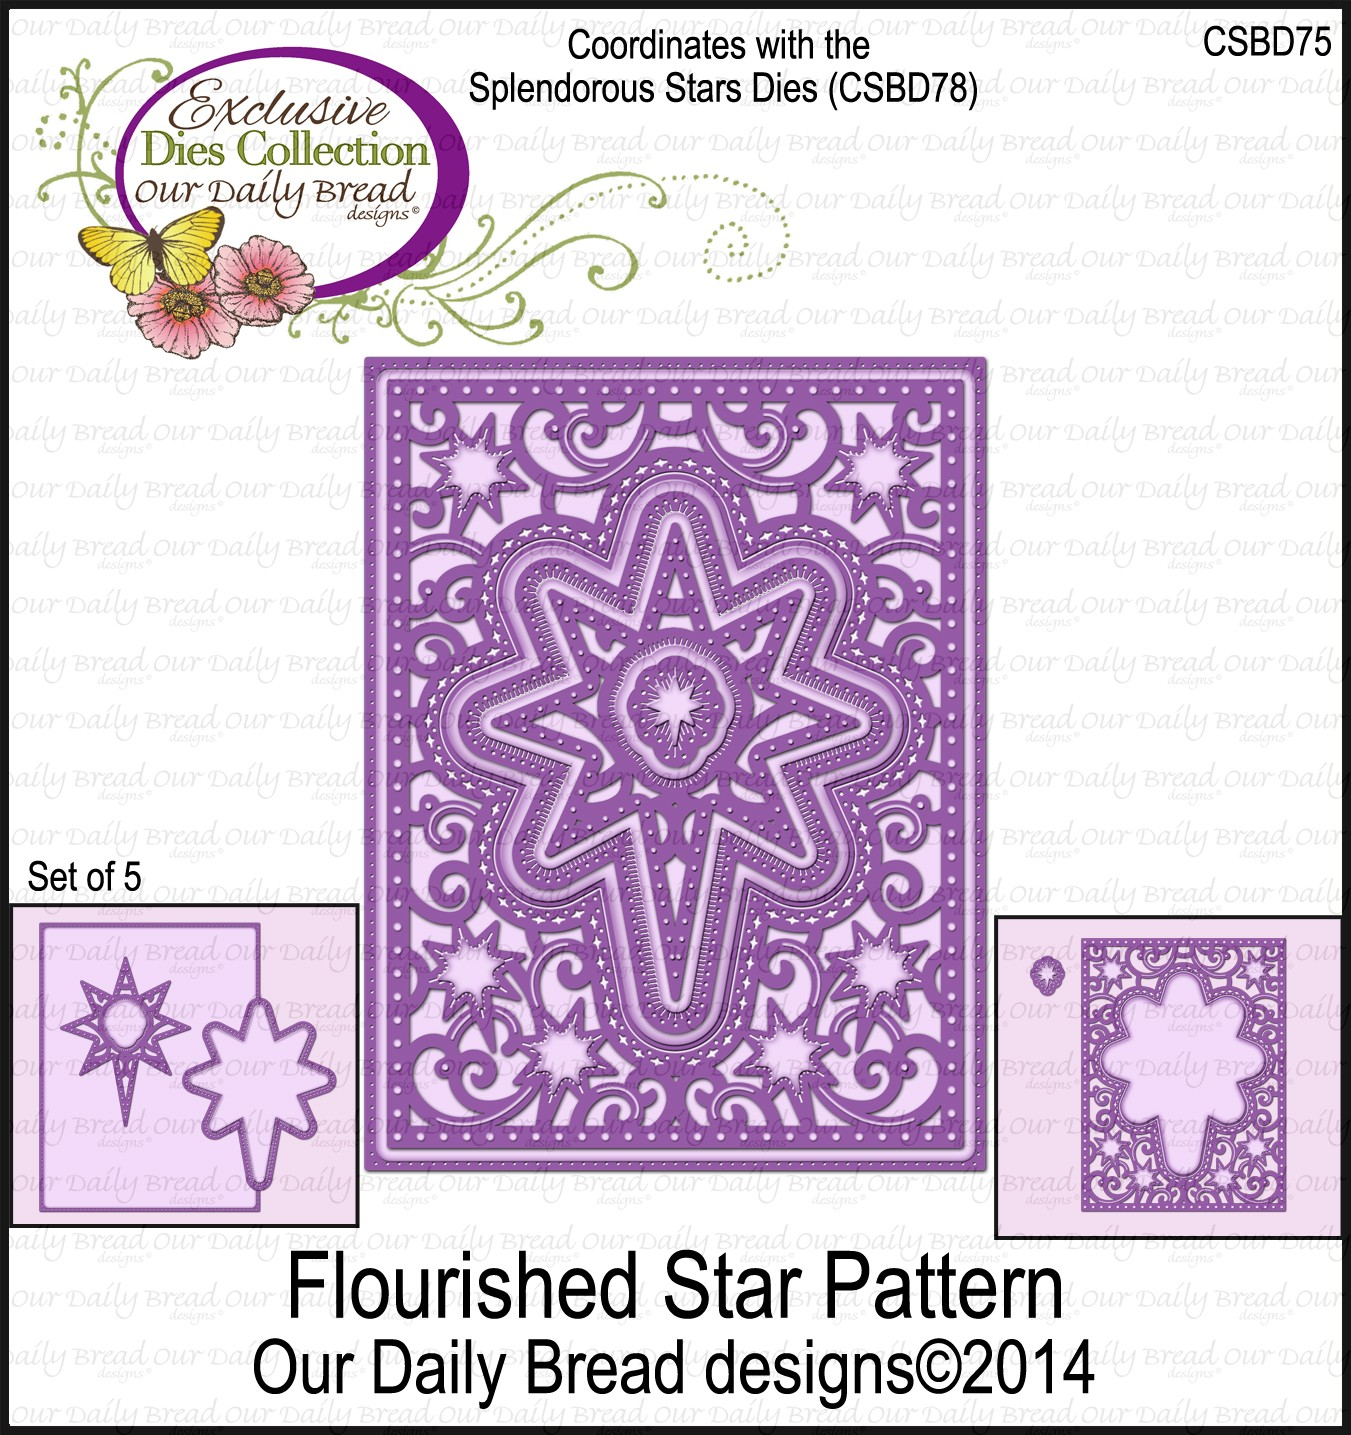 https://www.ourdailybreaddesigns.com/index.php/csbd75-flourished-star-pattern-die.html